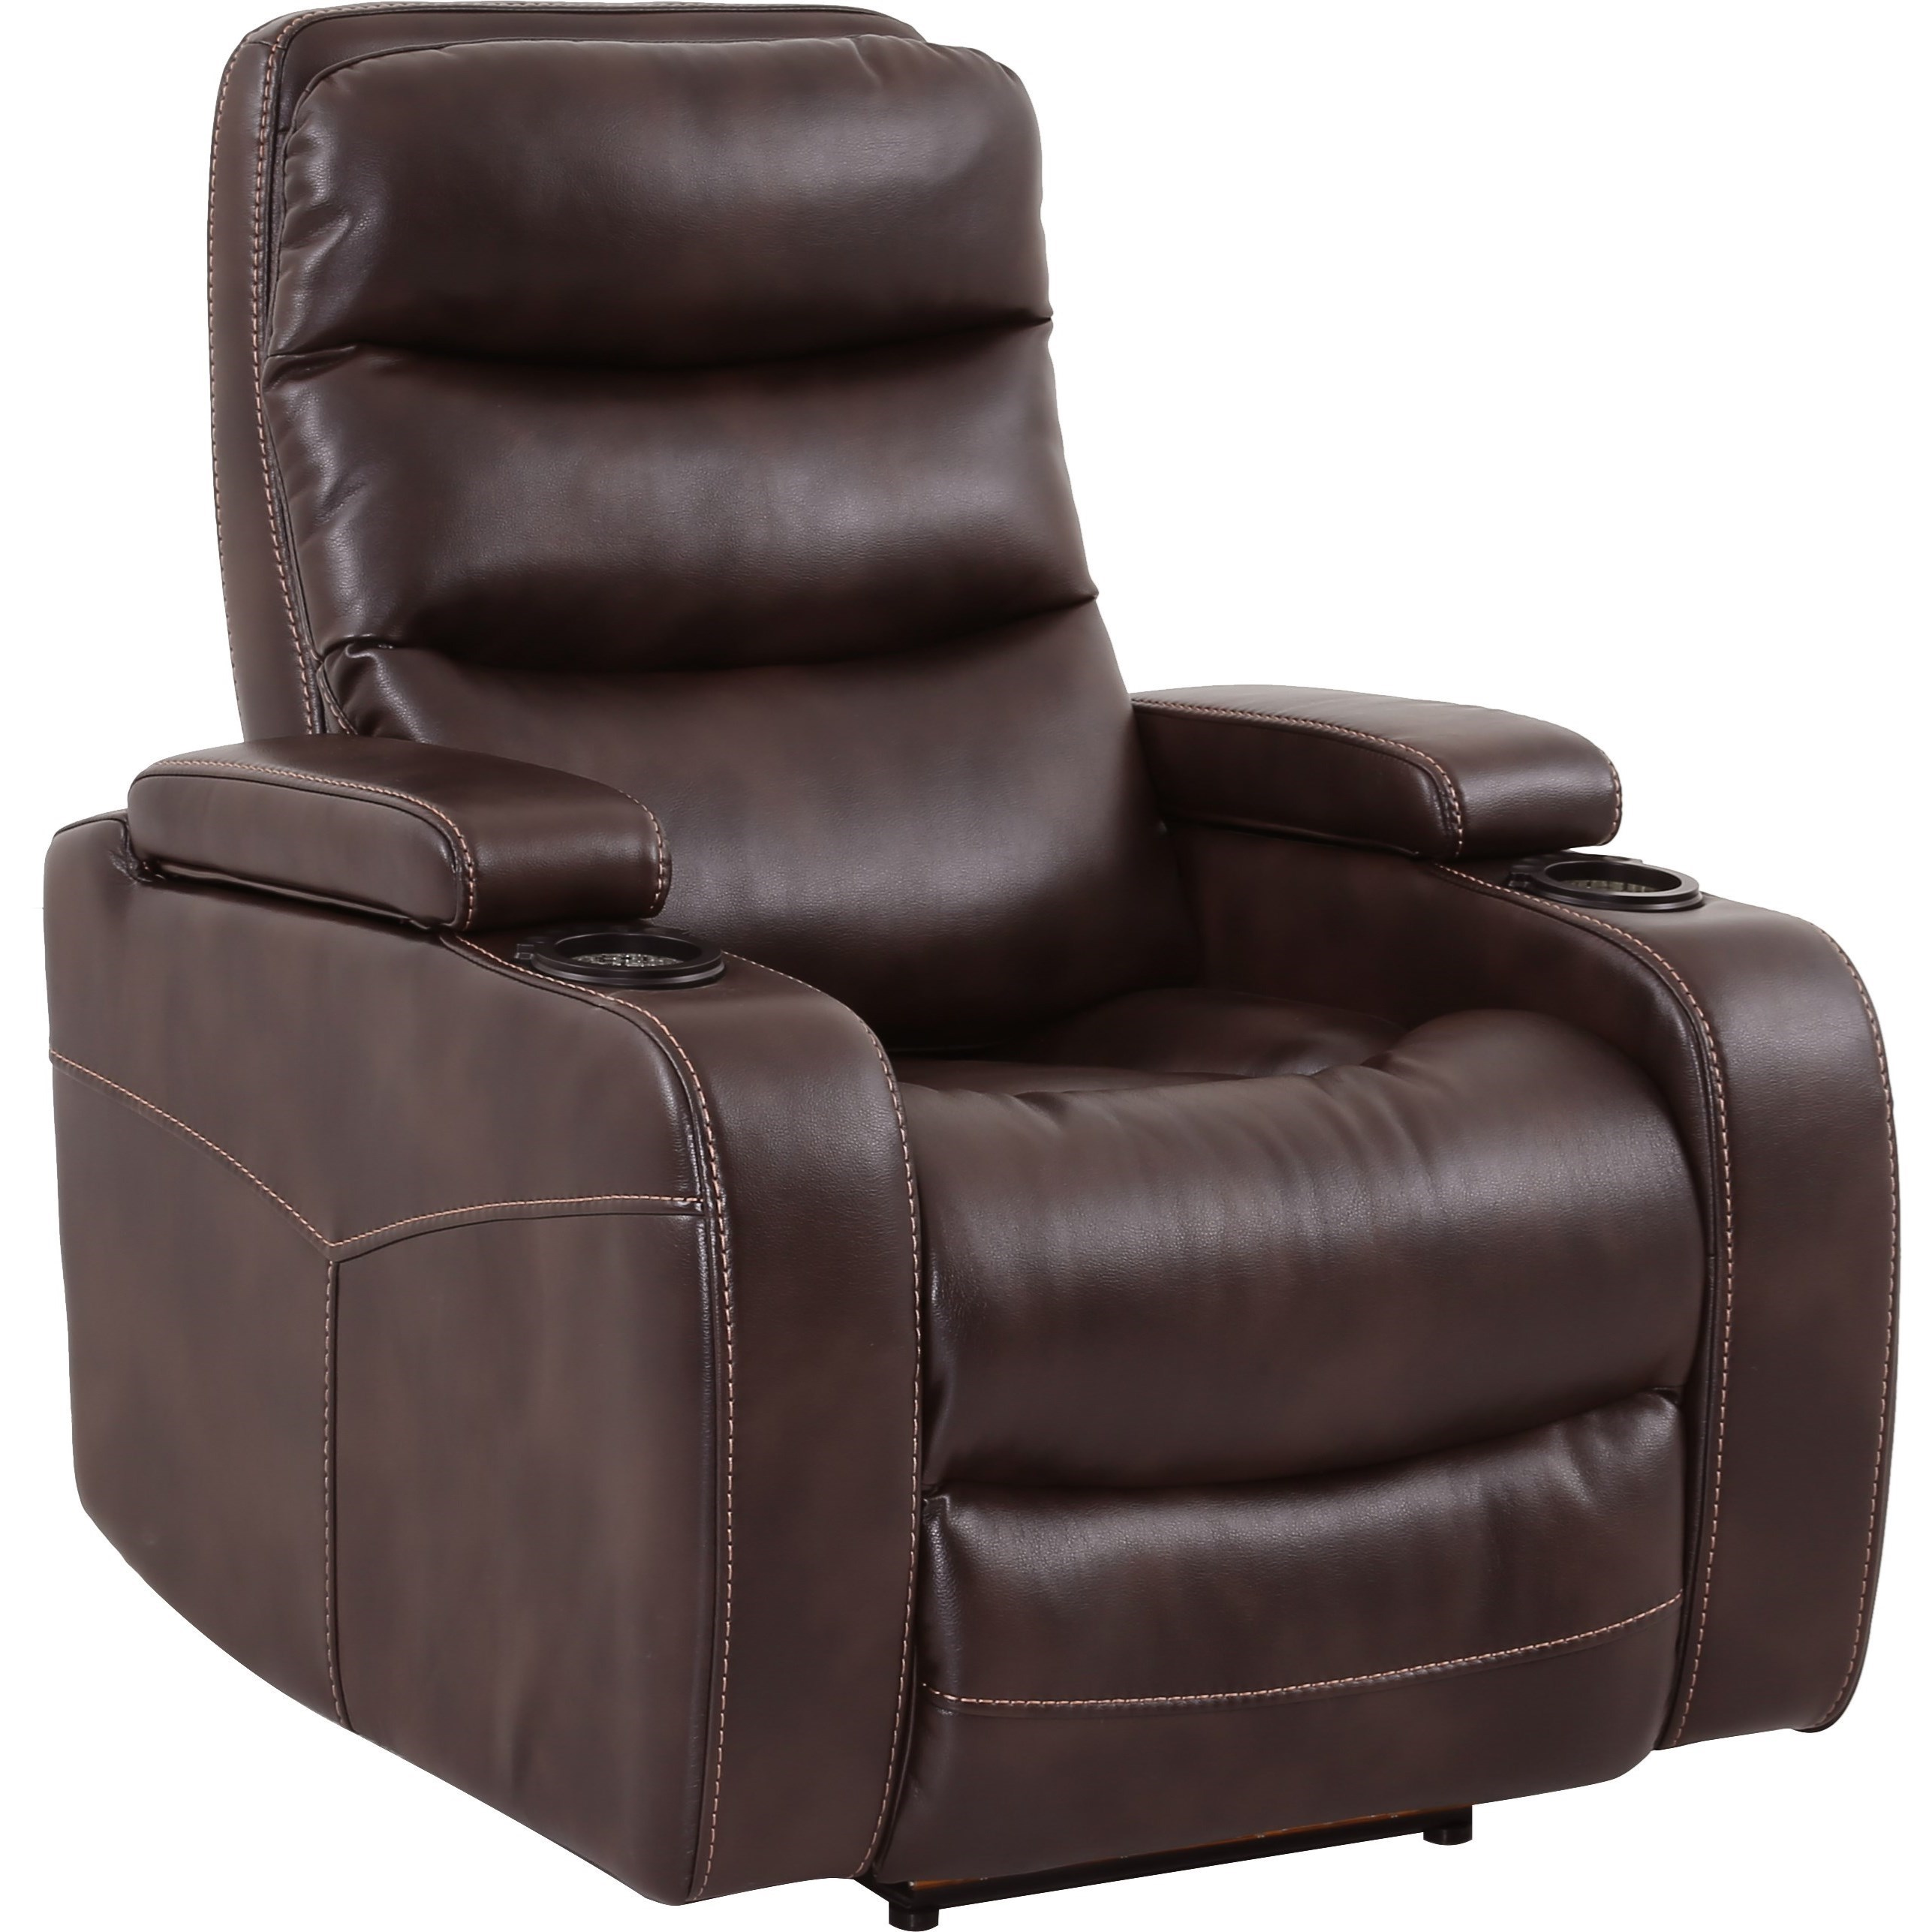 Parker Living Genesis Contemporary Home Theater Power Recliner with Cup Holders and In-Arm Storage  sc 1 st  Wayside Furniture & Parker Living Genesis Contemporary Home Theater Power Recliner ... islam-shia.org